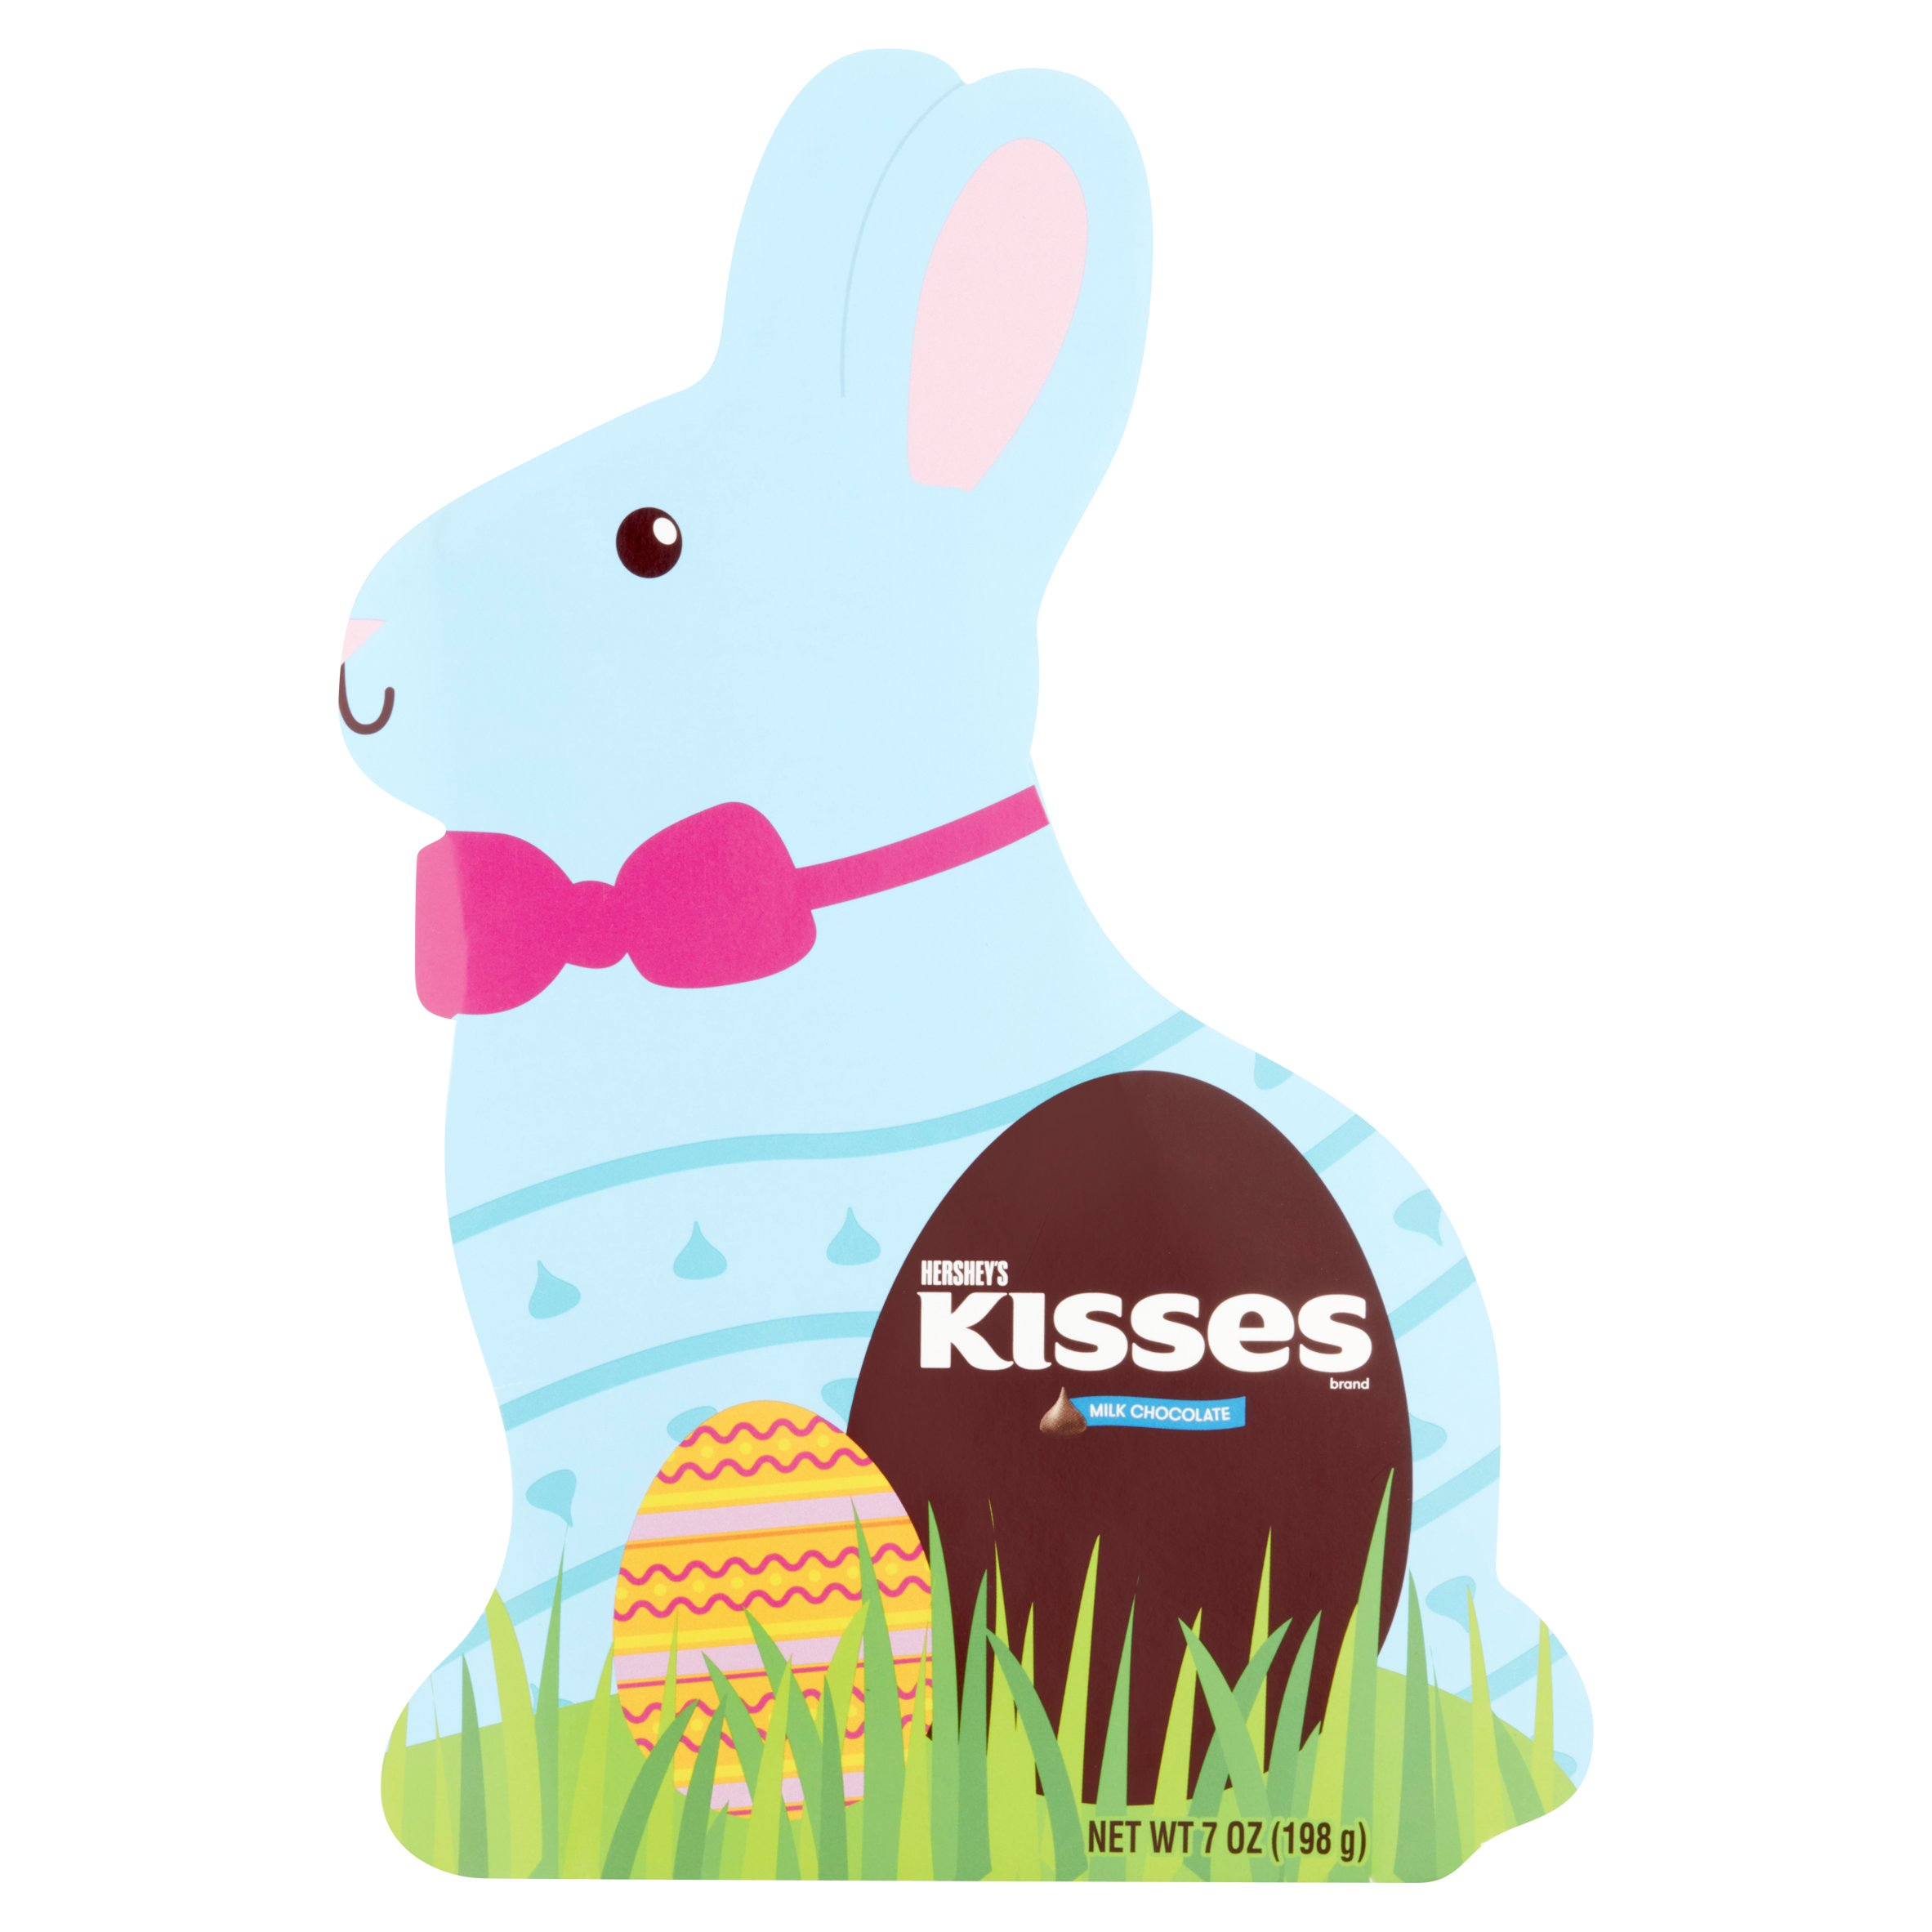 Hershey's Kisses Milk Chocolates in Easter Bunny Box, 7 oz by The Hershey Company